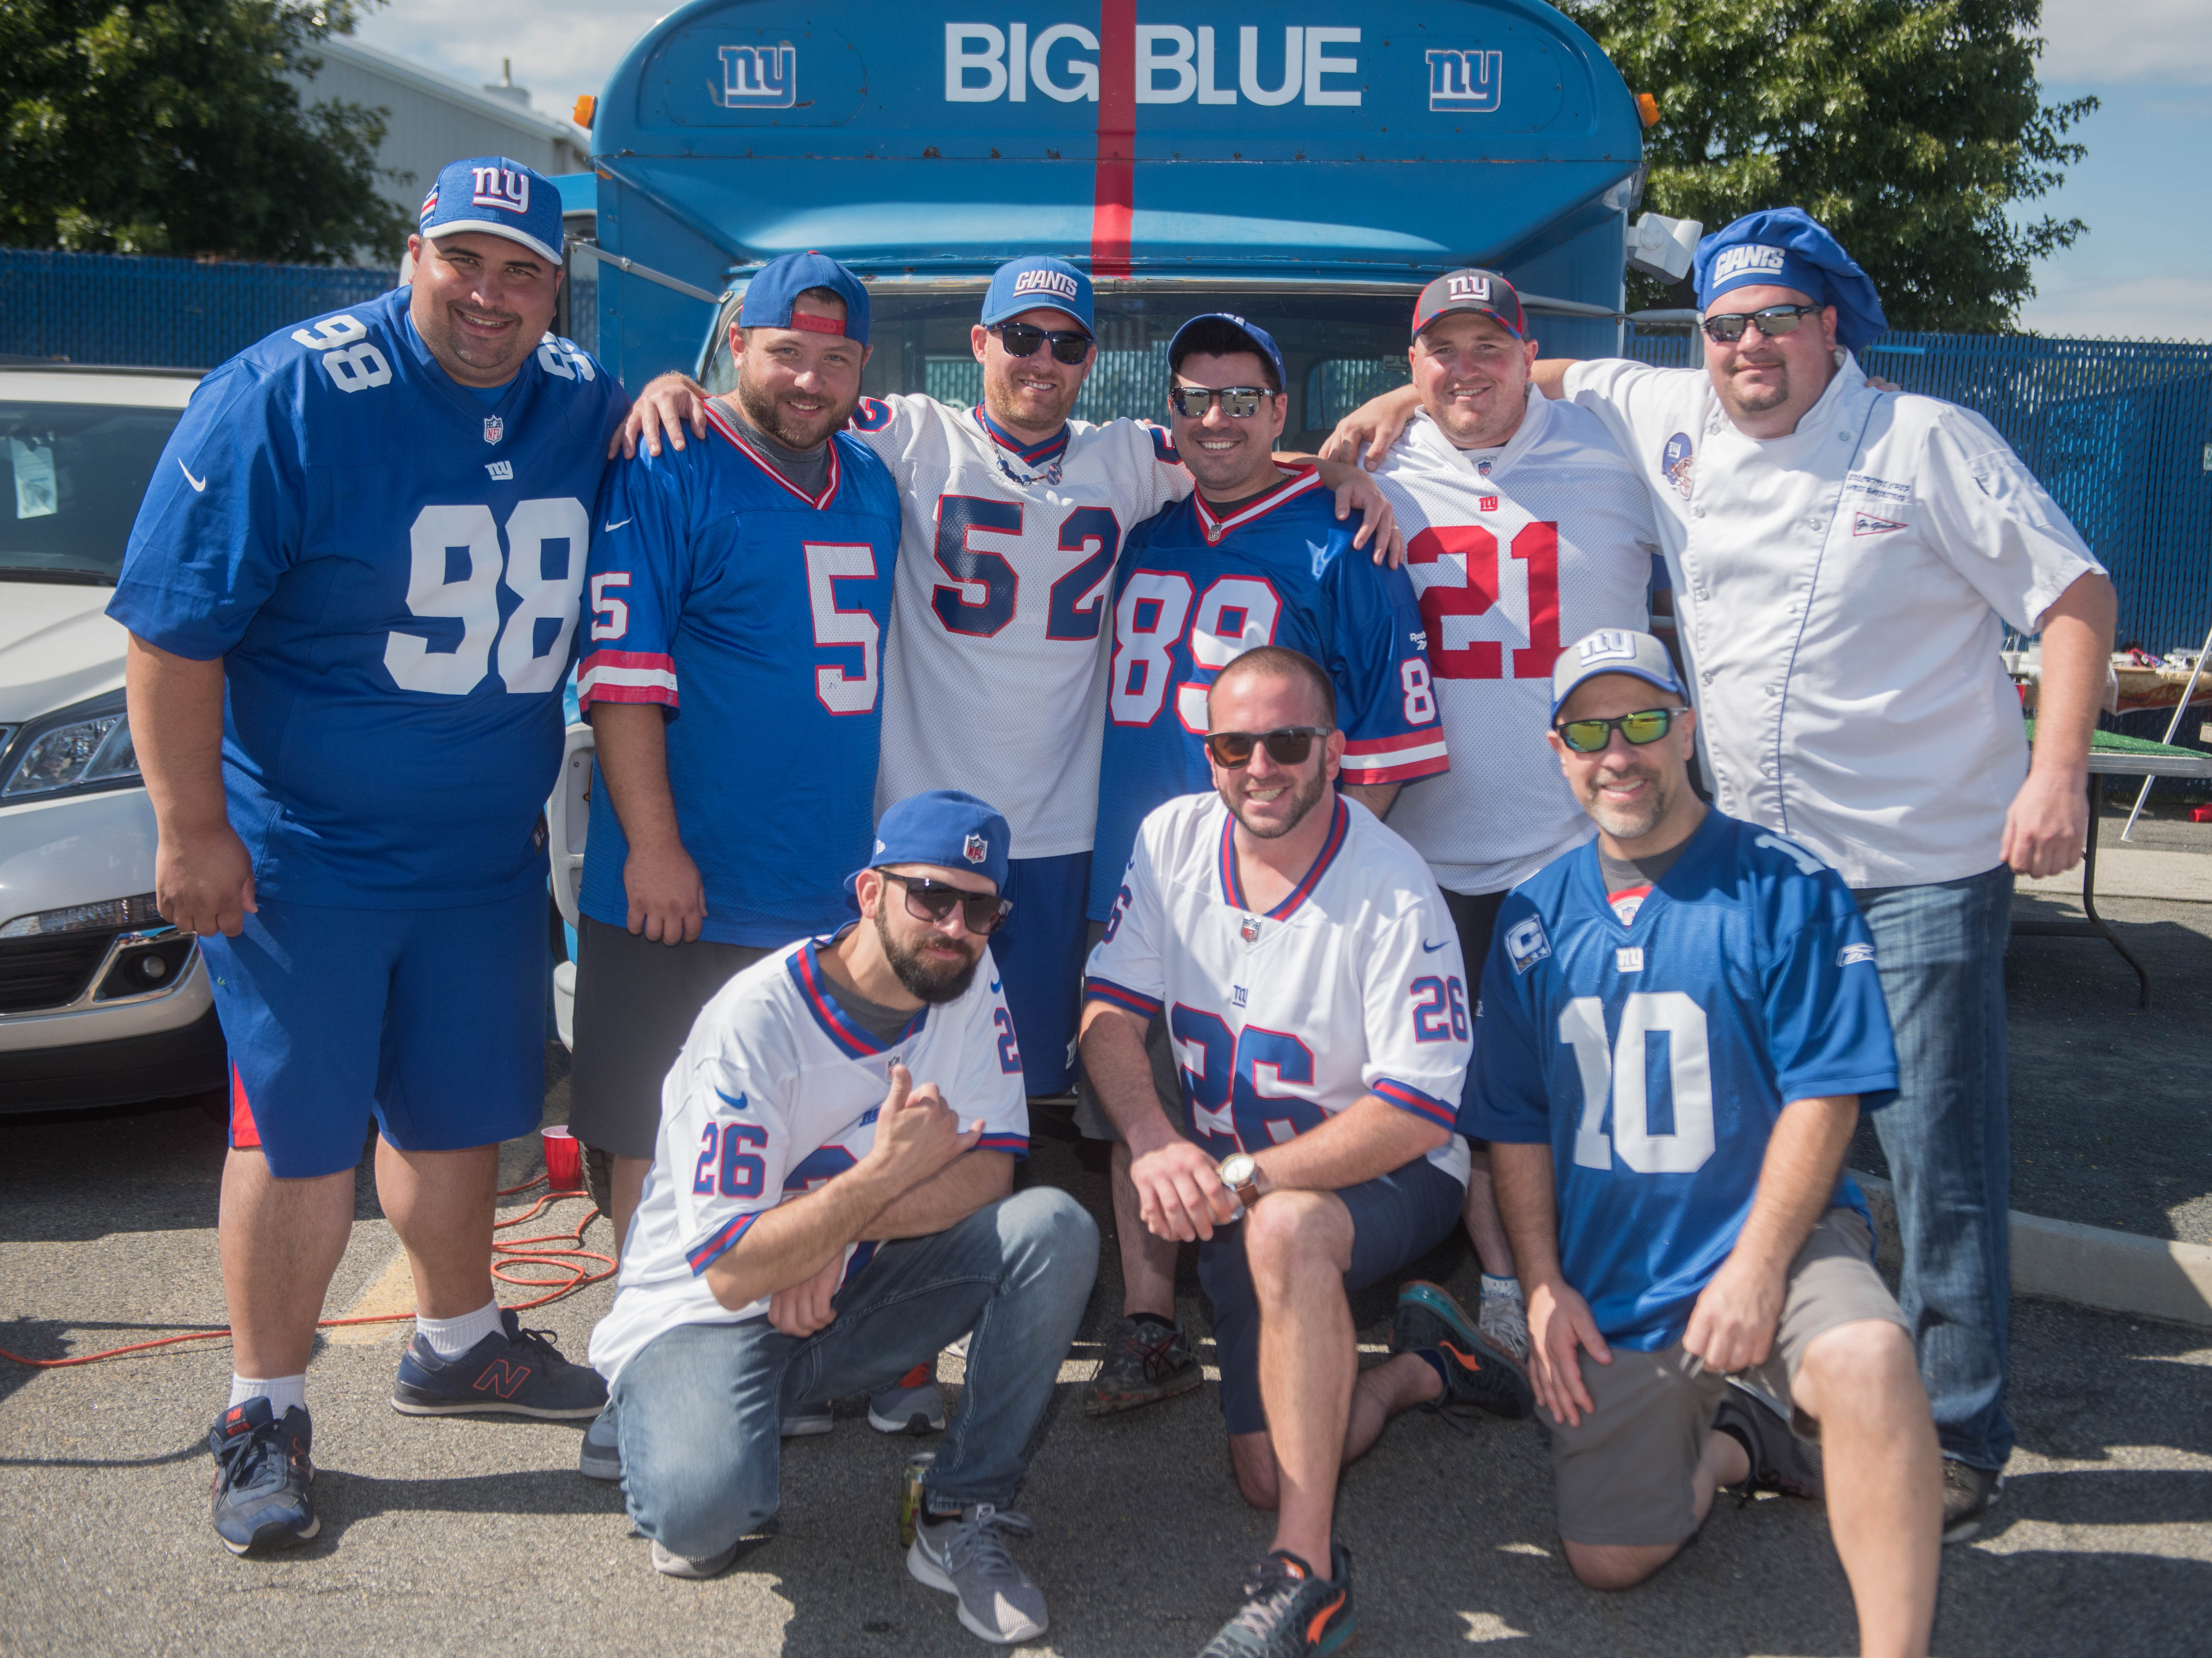 The Undefeated Tailgate Crew at the Giants vs. Saints tailgate party, Sunday, Sept. 30, 2018.